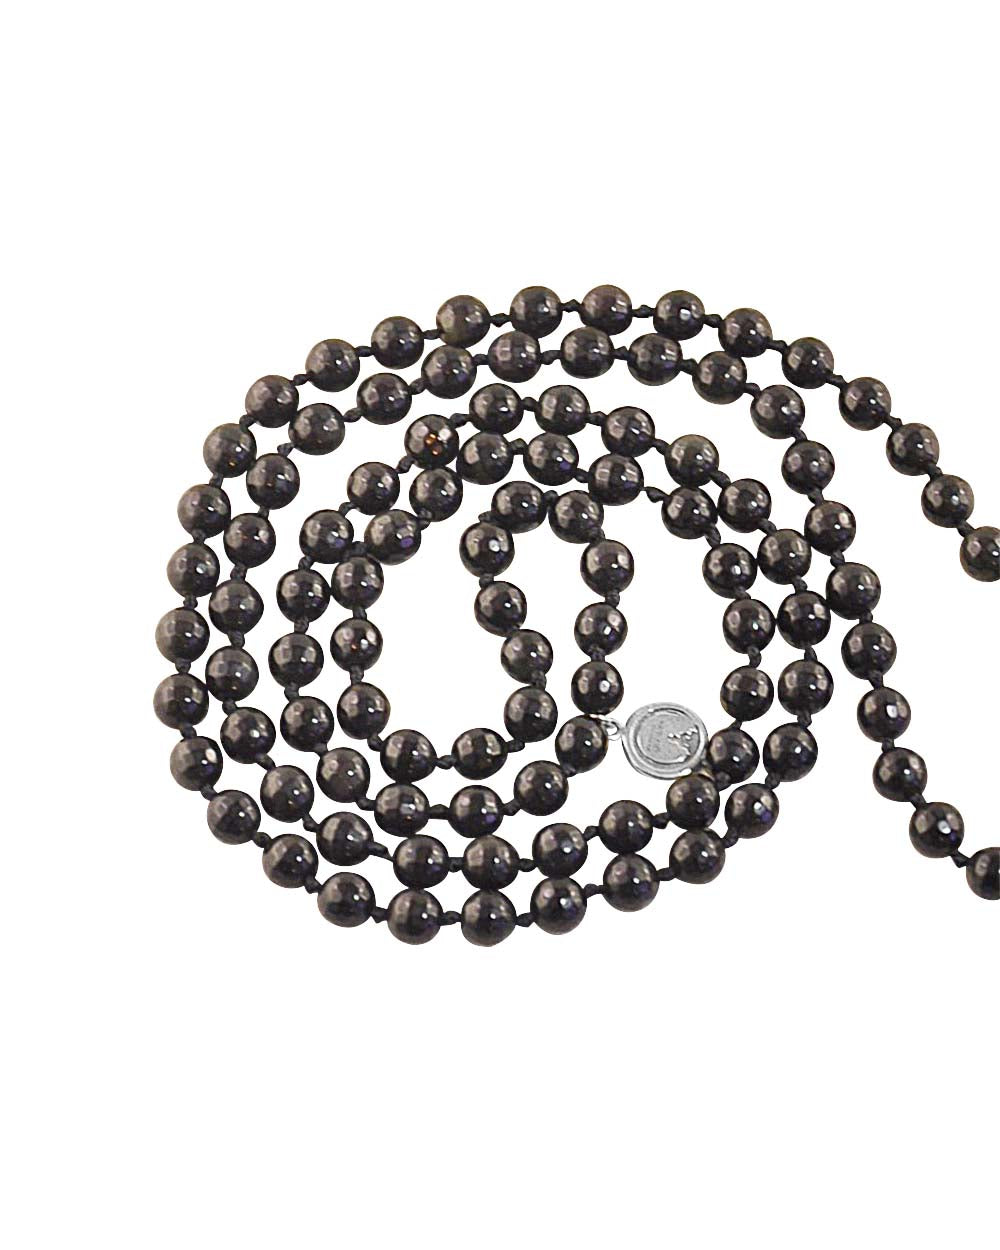 Thrive and Succeed Mala Black Obsidian